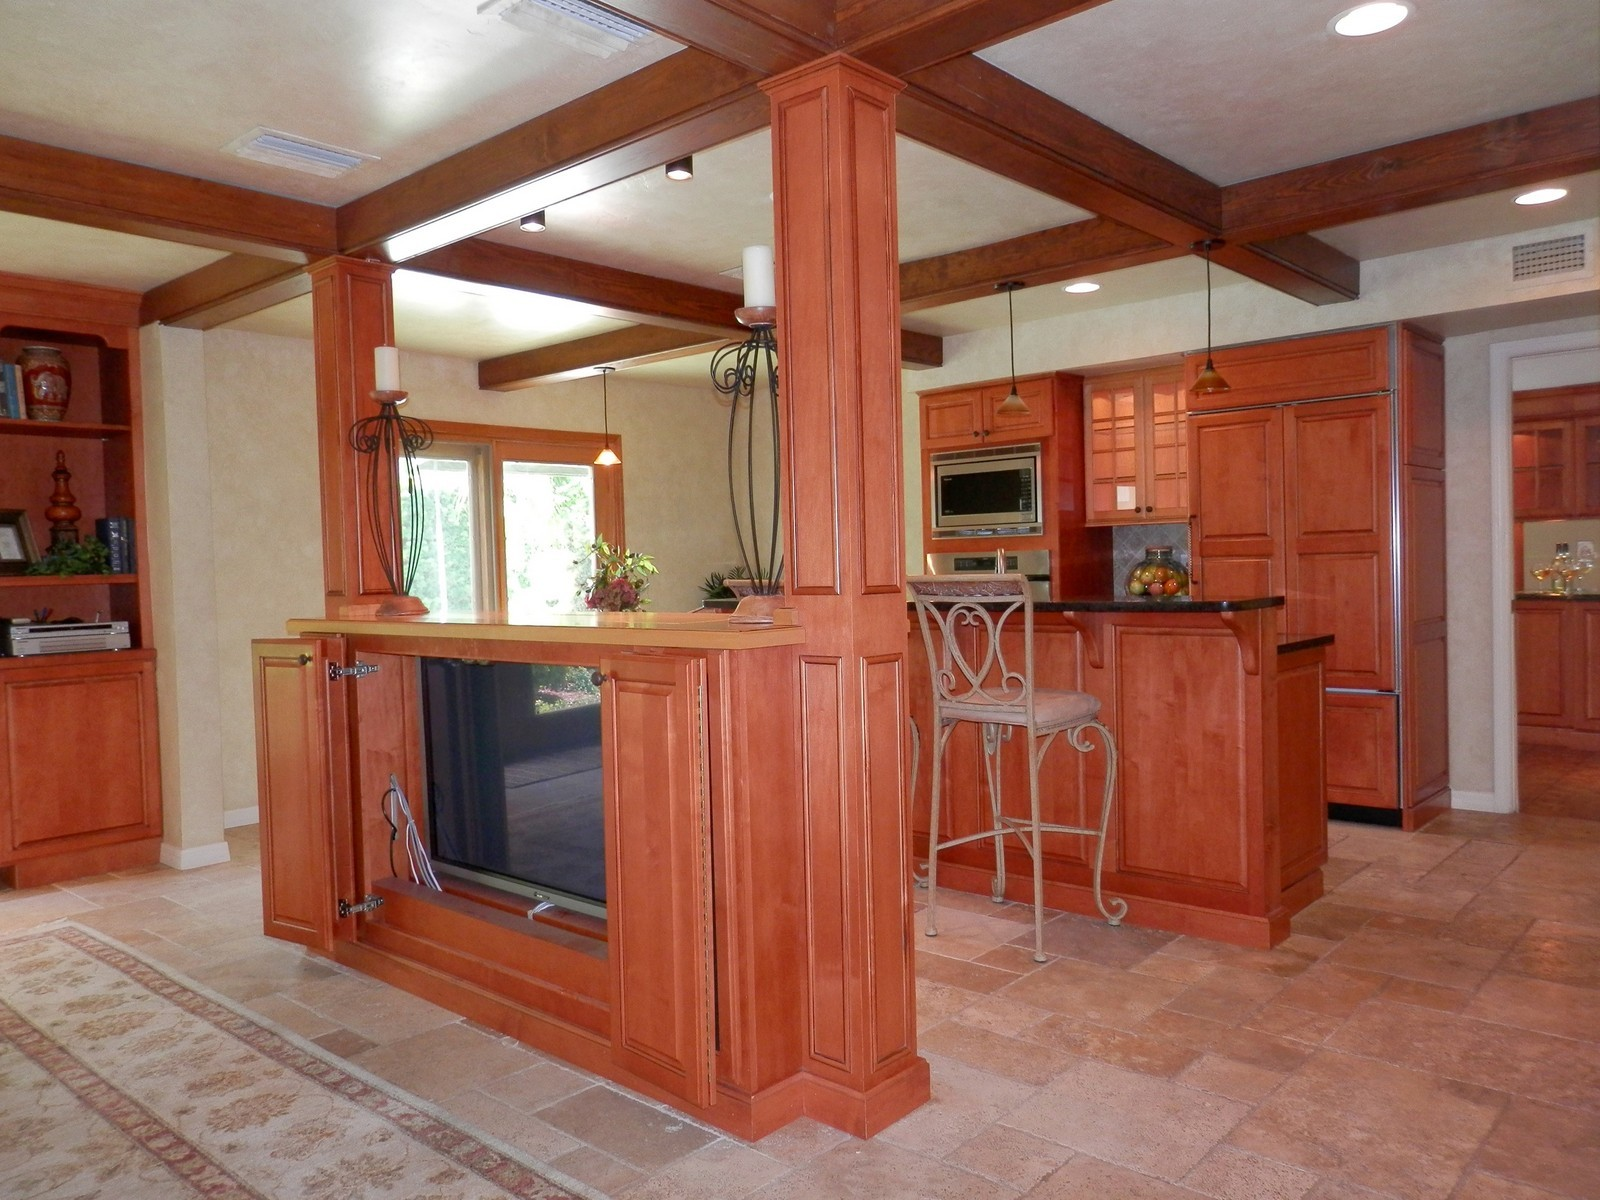 Real Estate Photography - 4920 Lyford Cay Road, Tampa, FL, 33629 - Kitchen / Breakfast Room